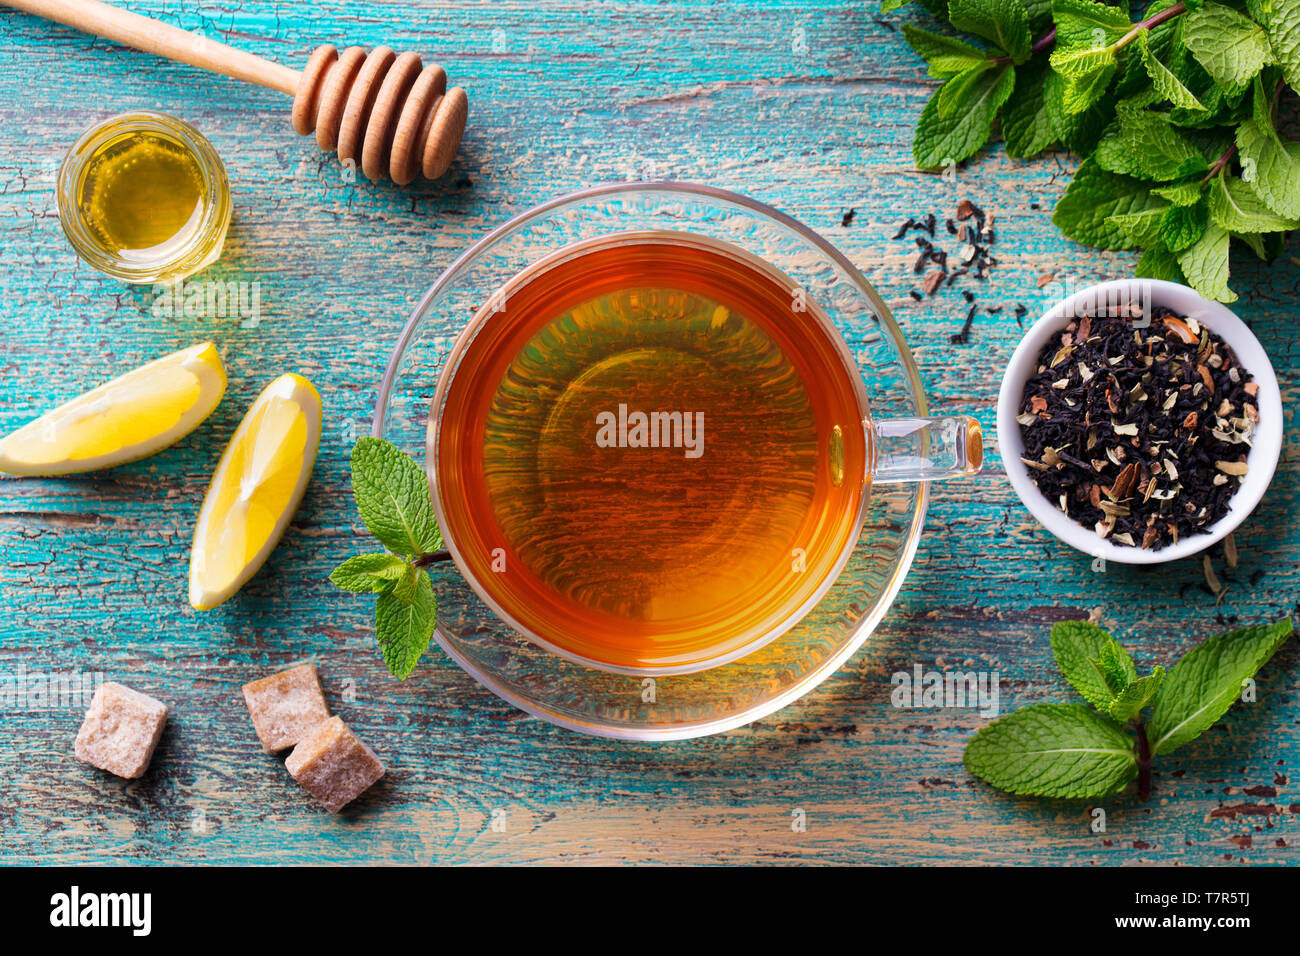 Tea cup with mint leaf and honey. Wooden background. Top view. Stock Photo